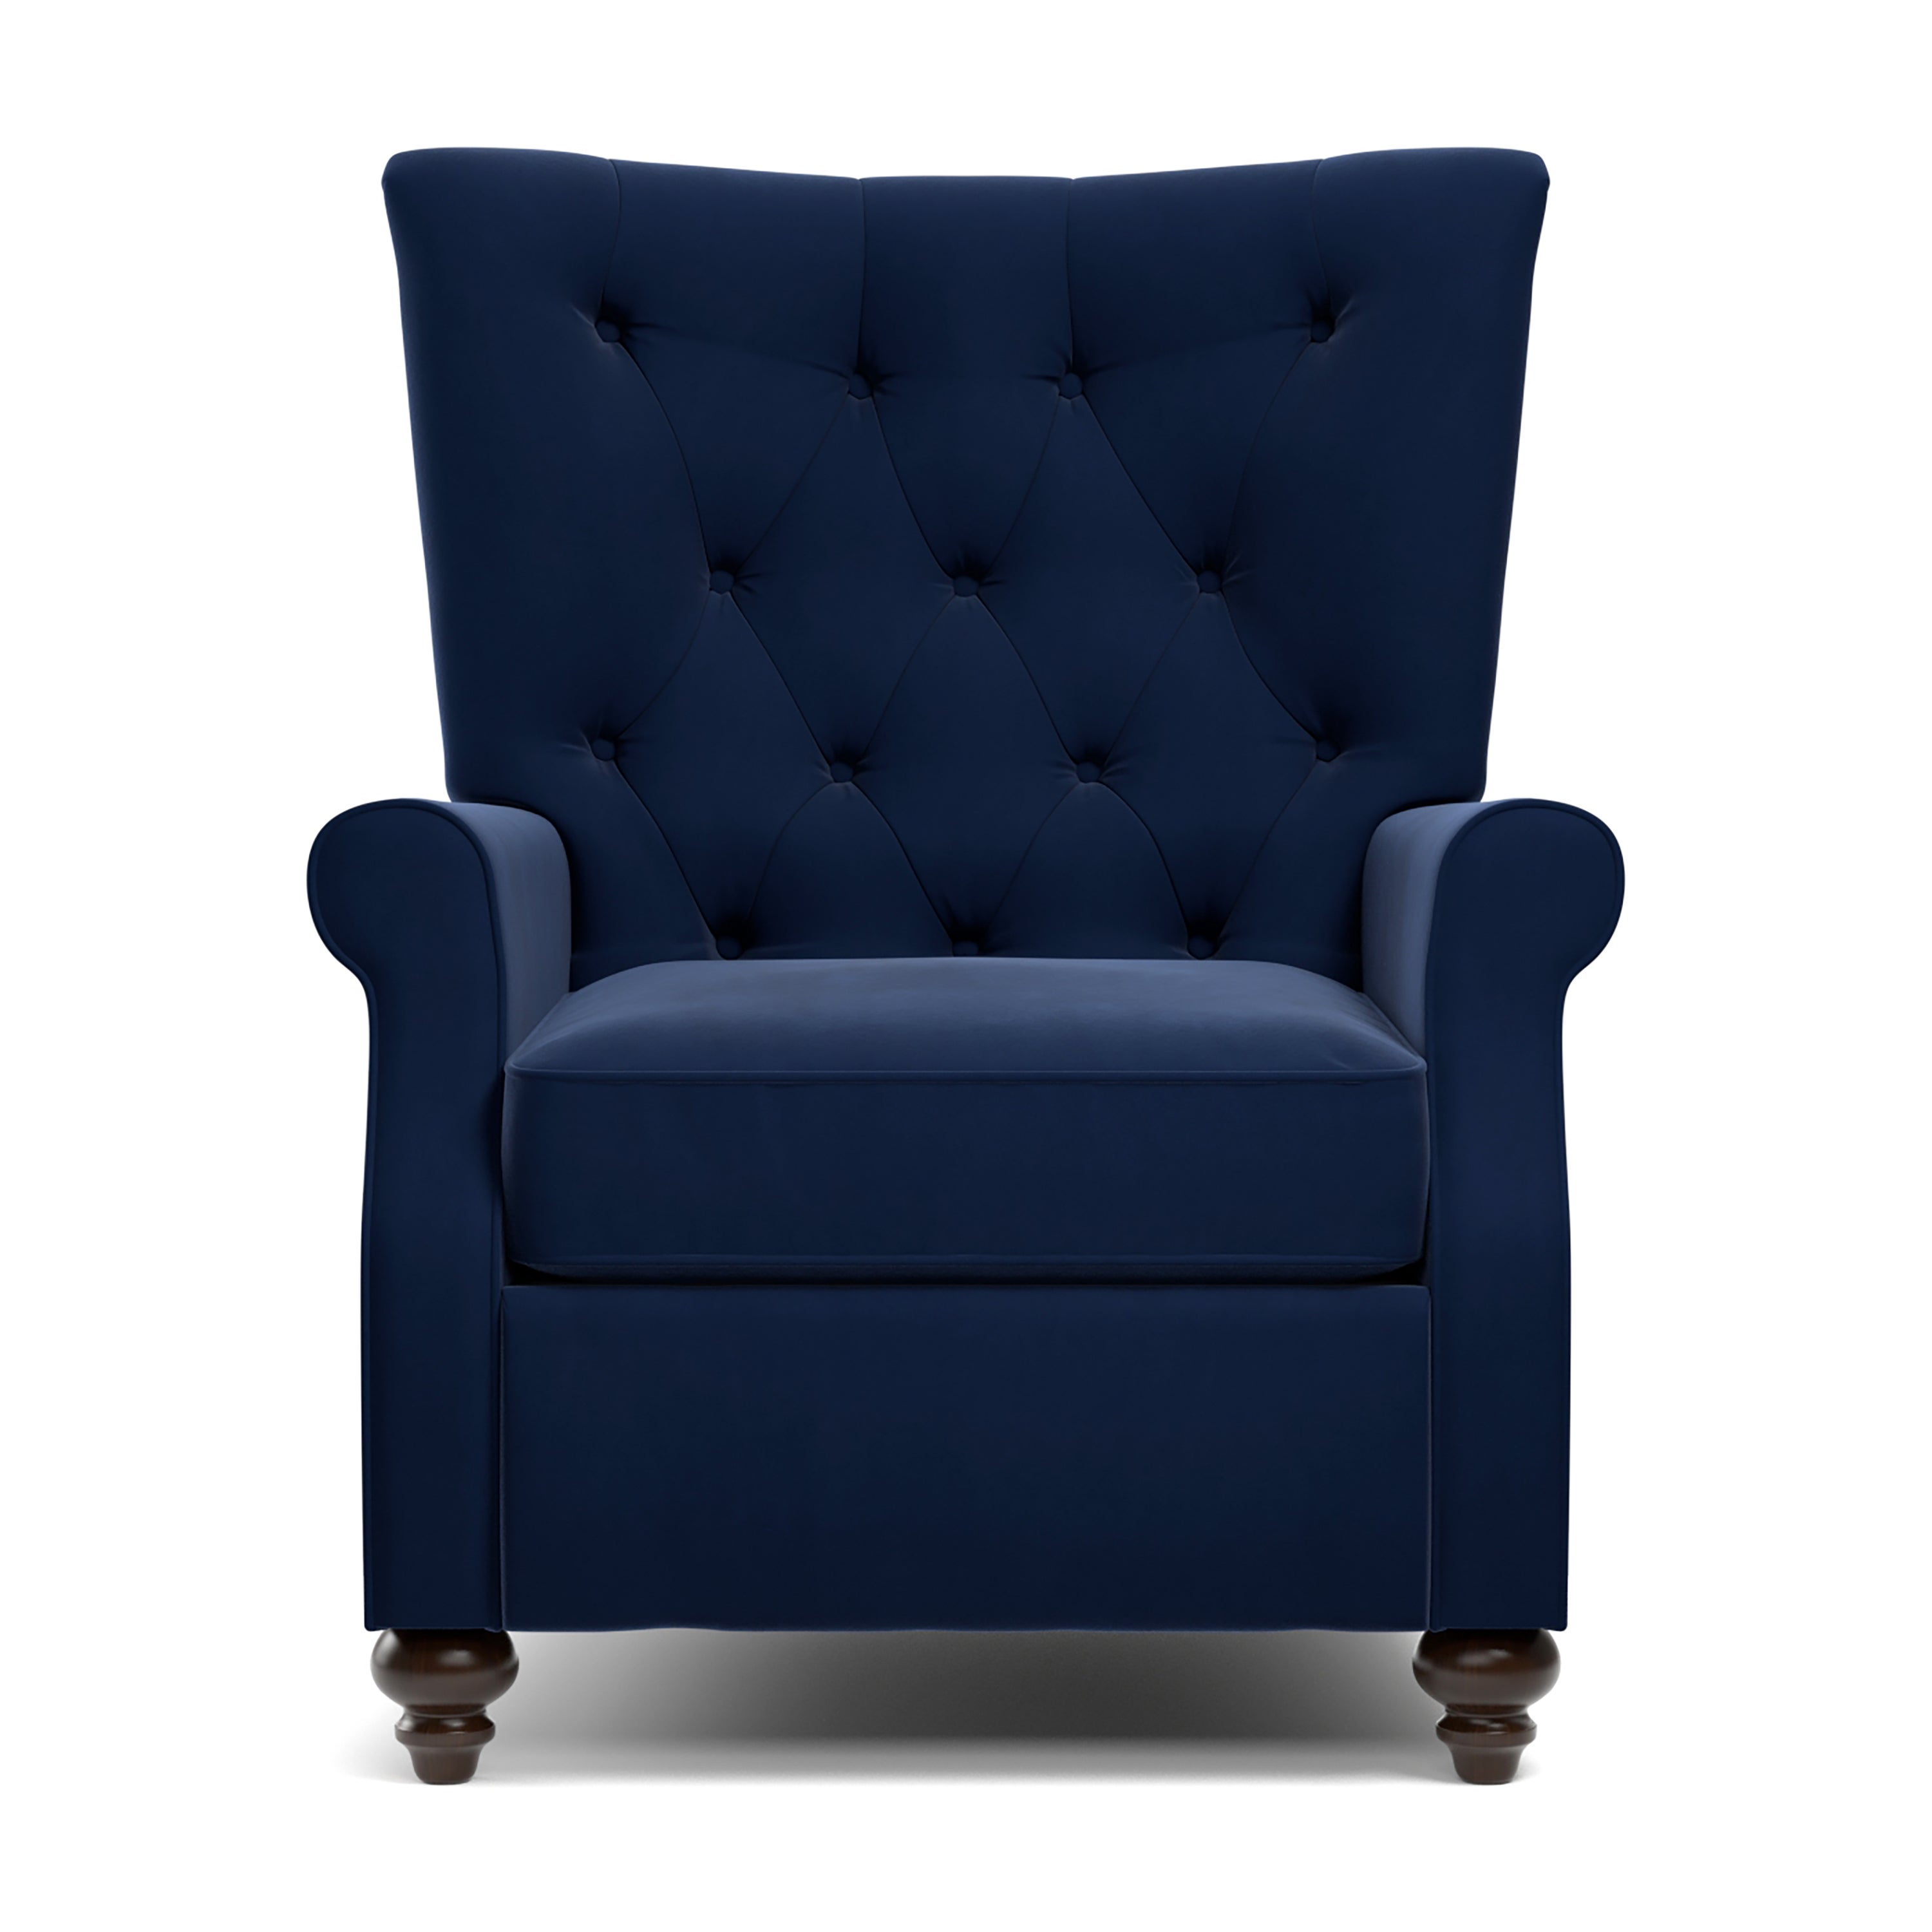 Beau Shop Copper Grove Kamoya Navy Blue Velvet Push Back Recliner Chair   On  Sale   Free Shipping Today   Overstock.com   23123042